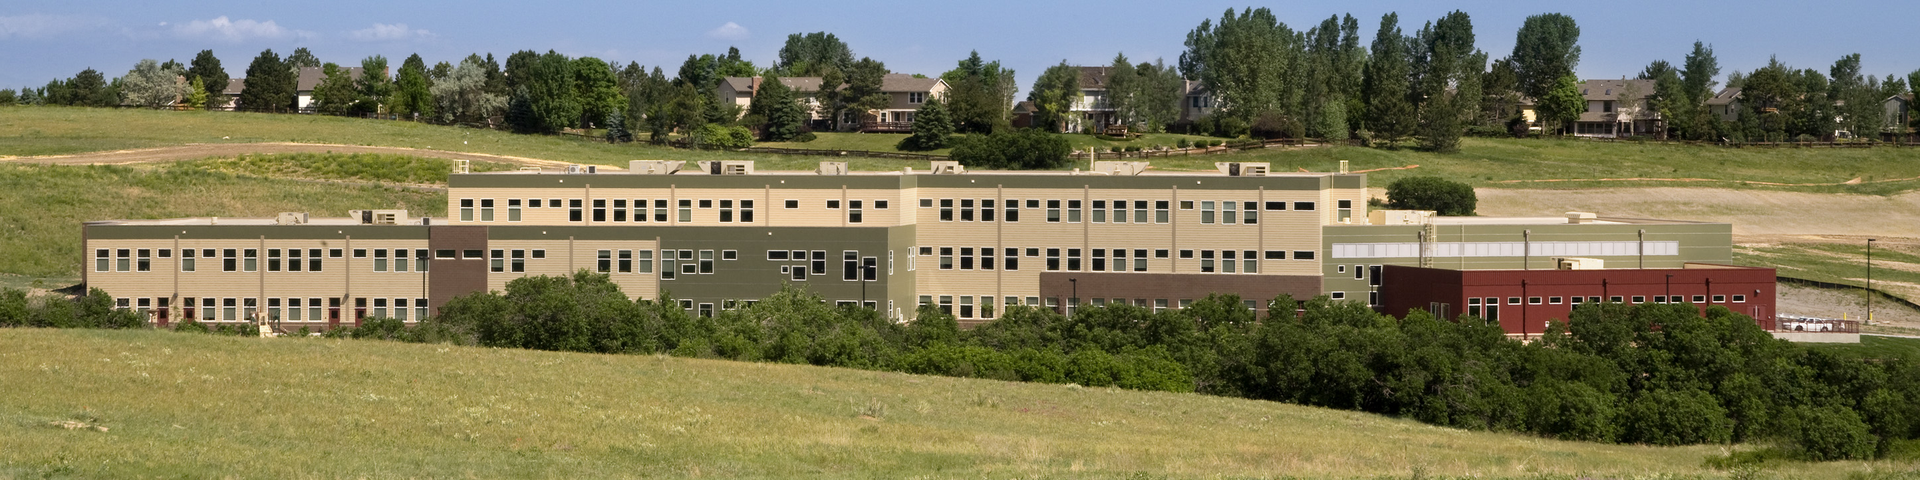 Image of the Castle Pines campus